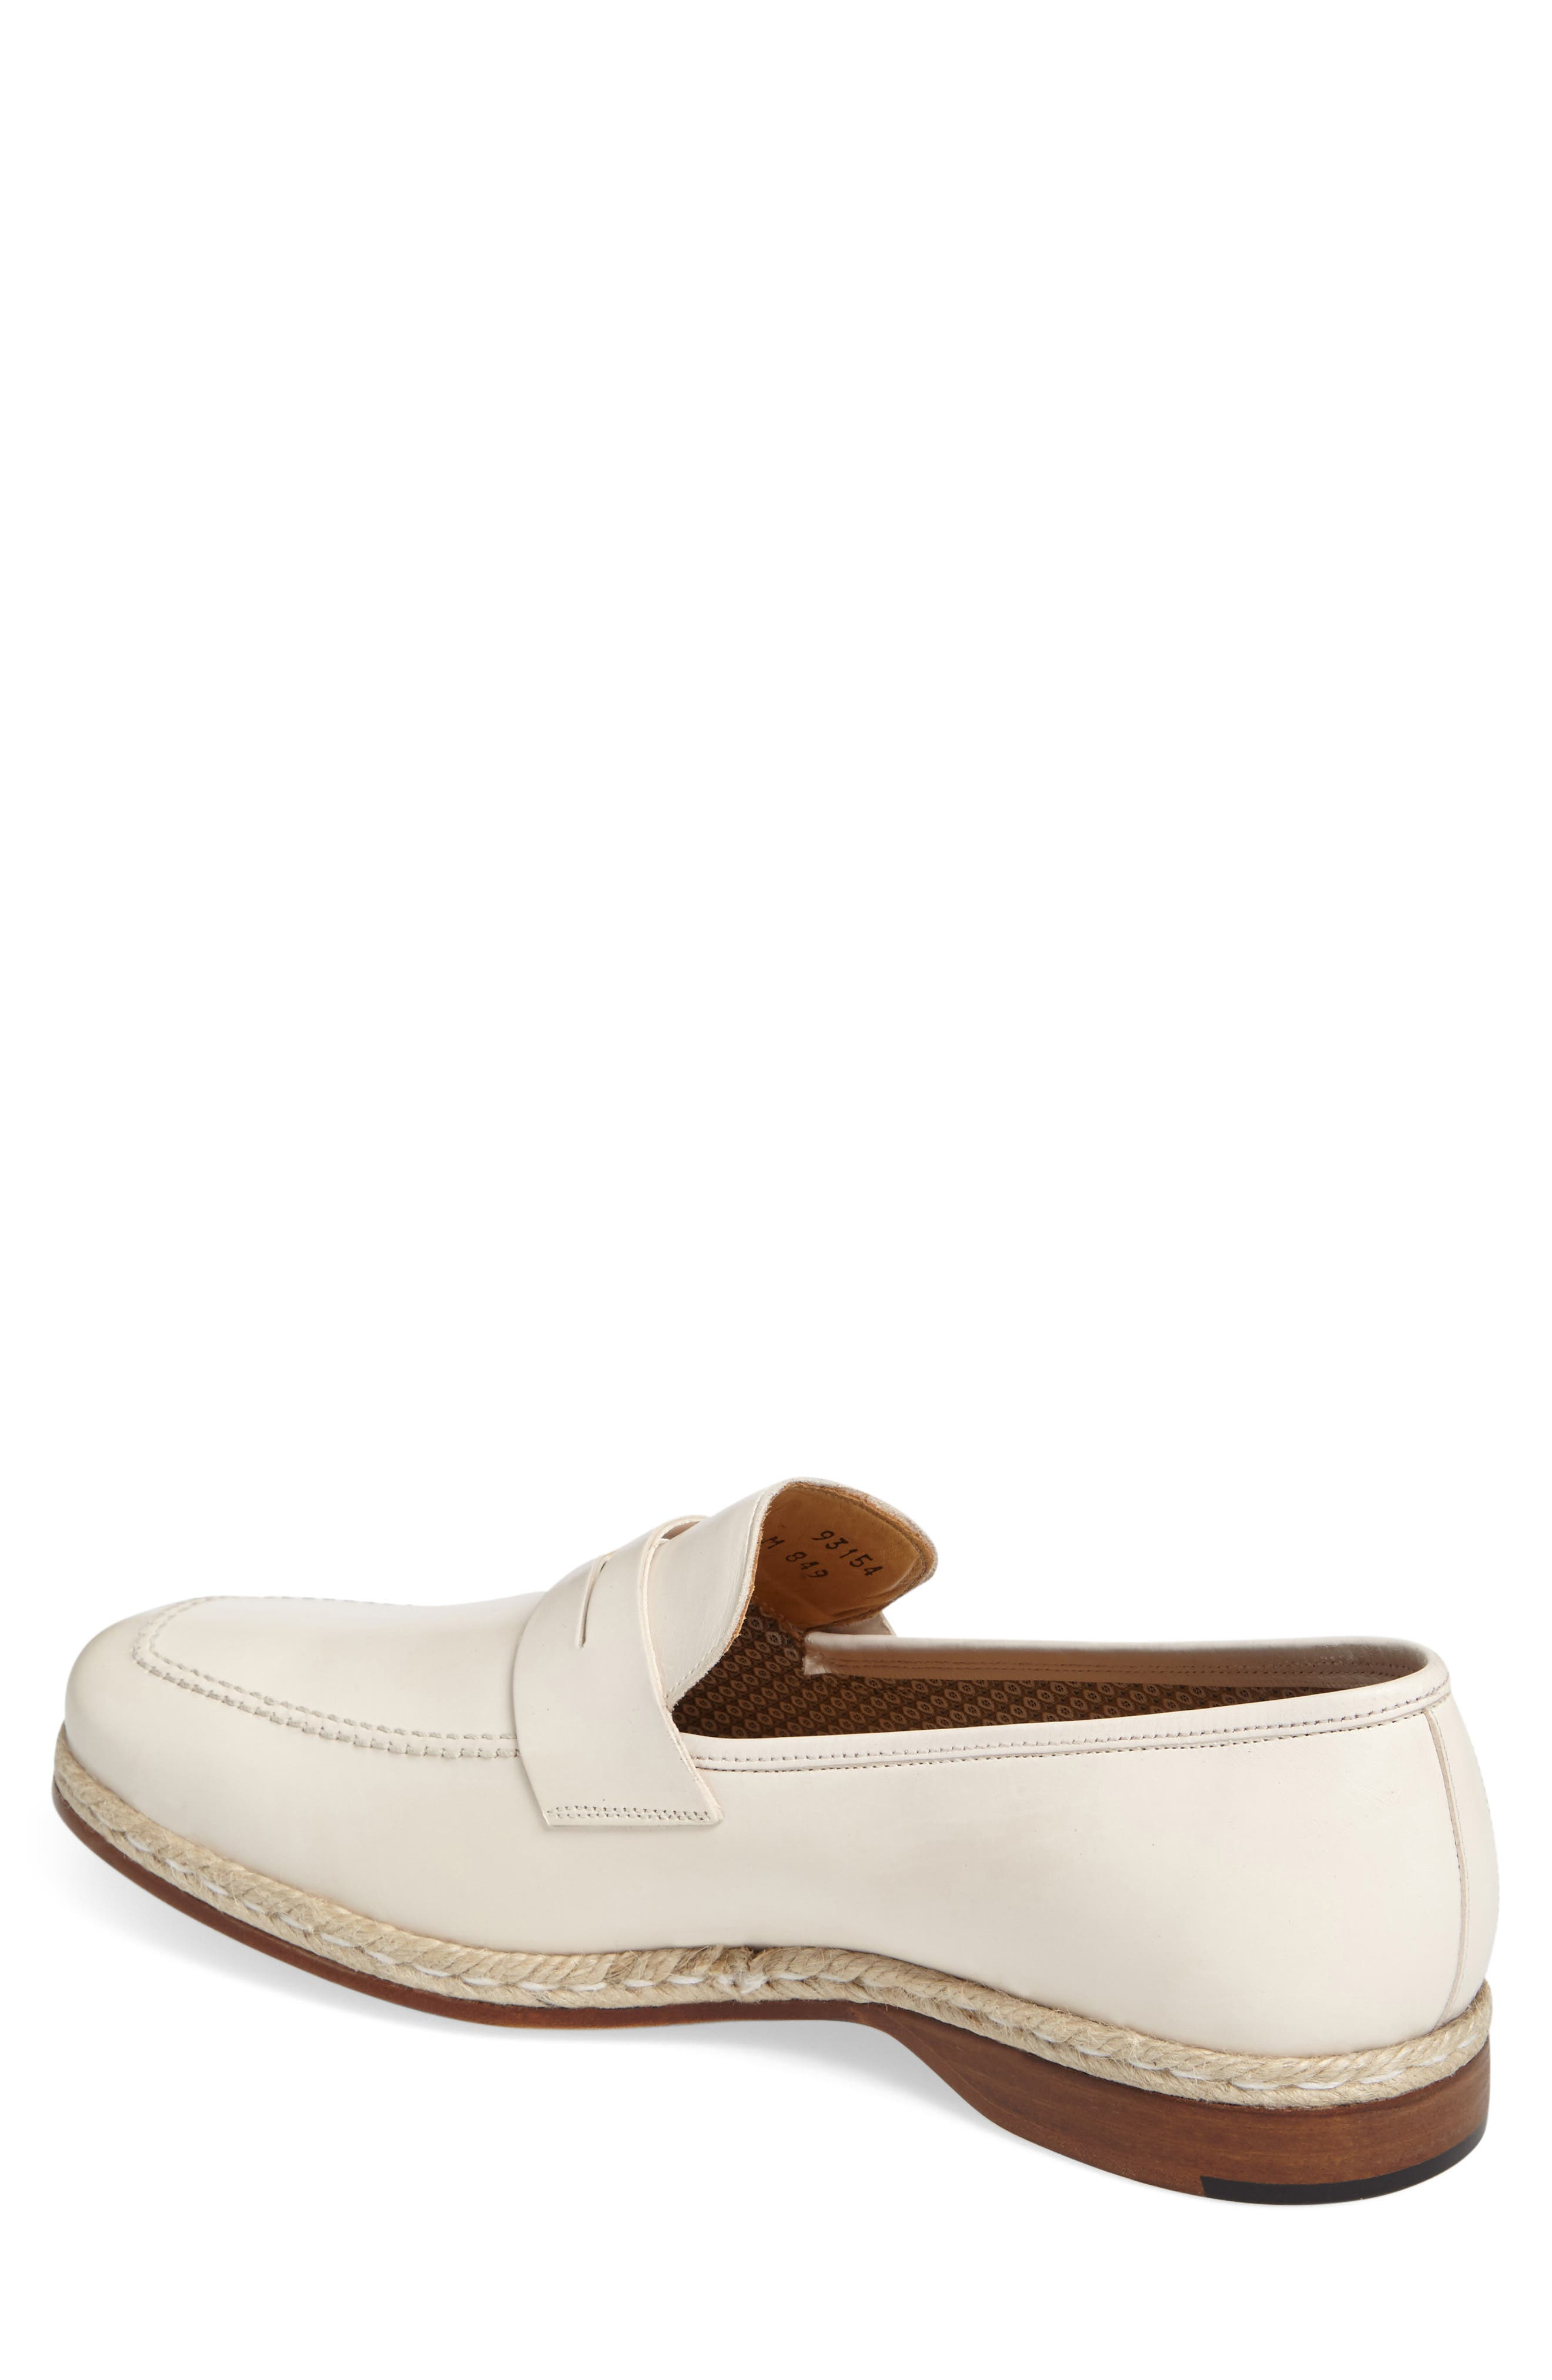 Battani Penny Loafer,                             Alternate thumbnail 2, color,                             BONE LEATHER